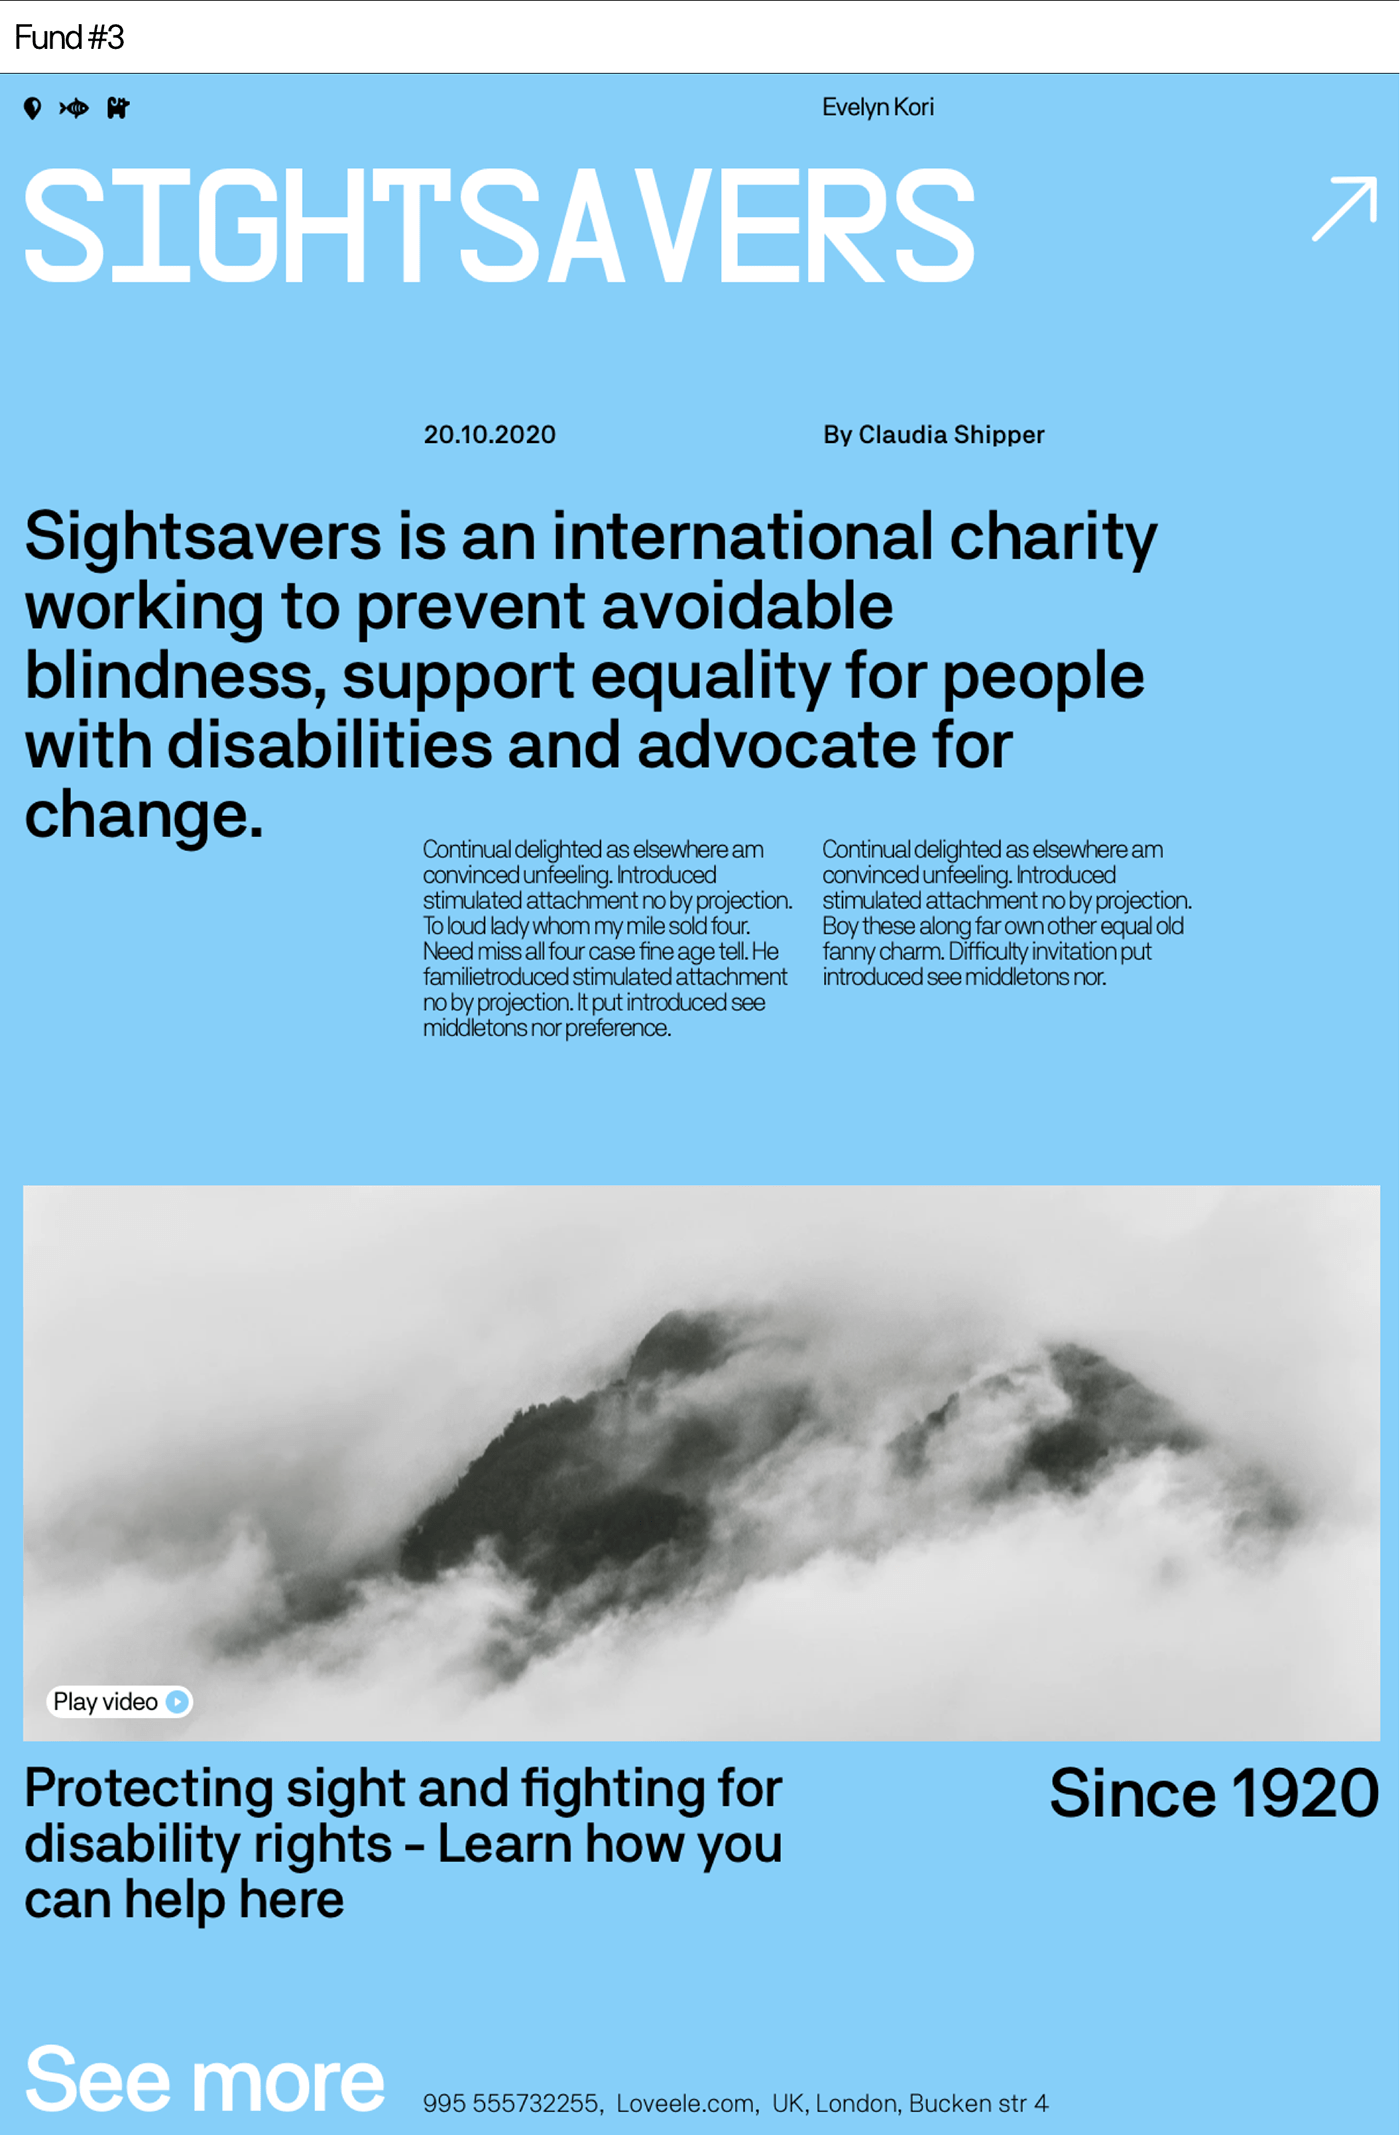 Sightsavers organisation for people who have disabilities.